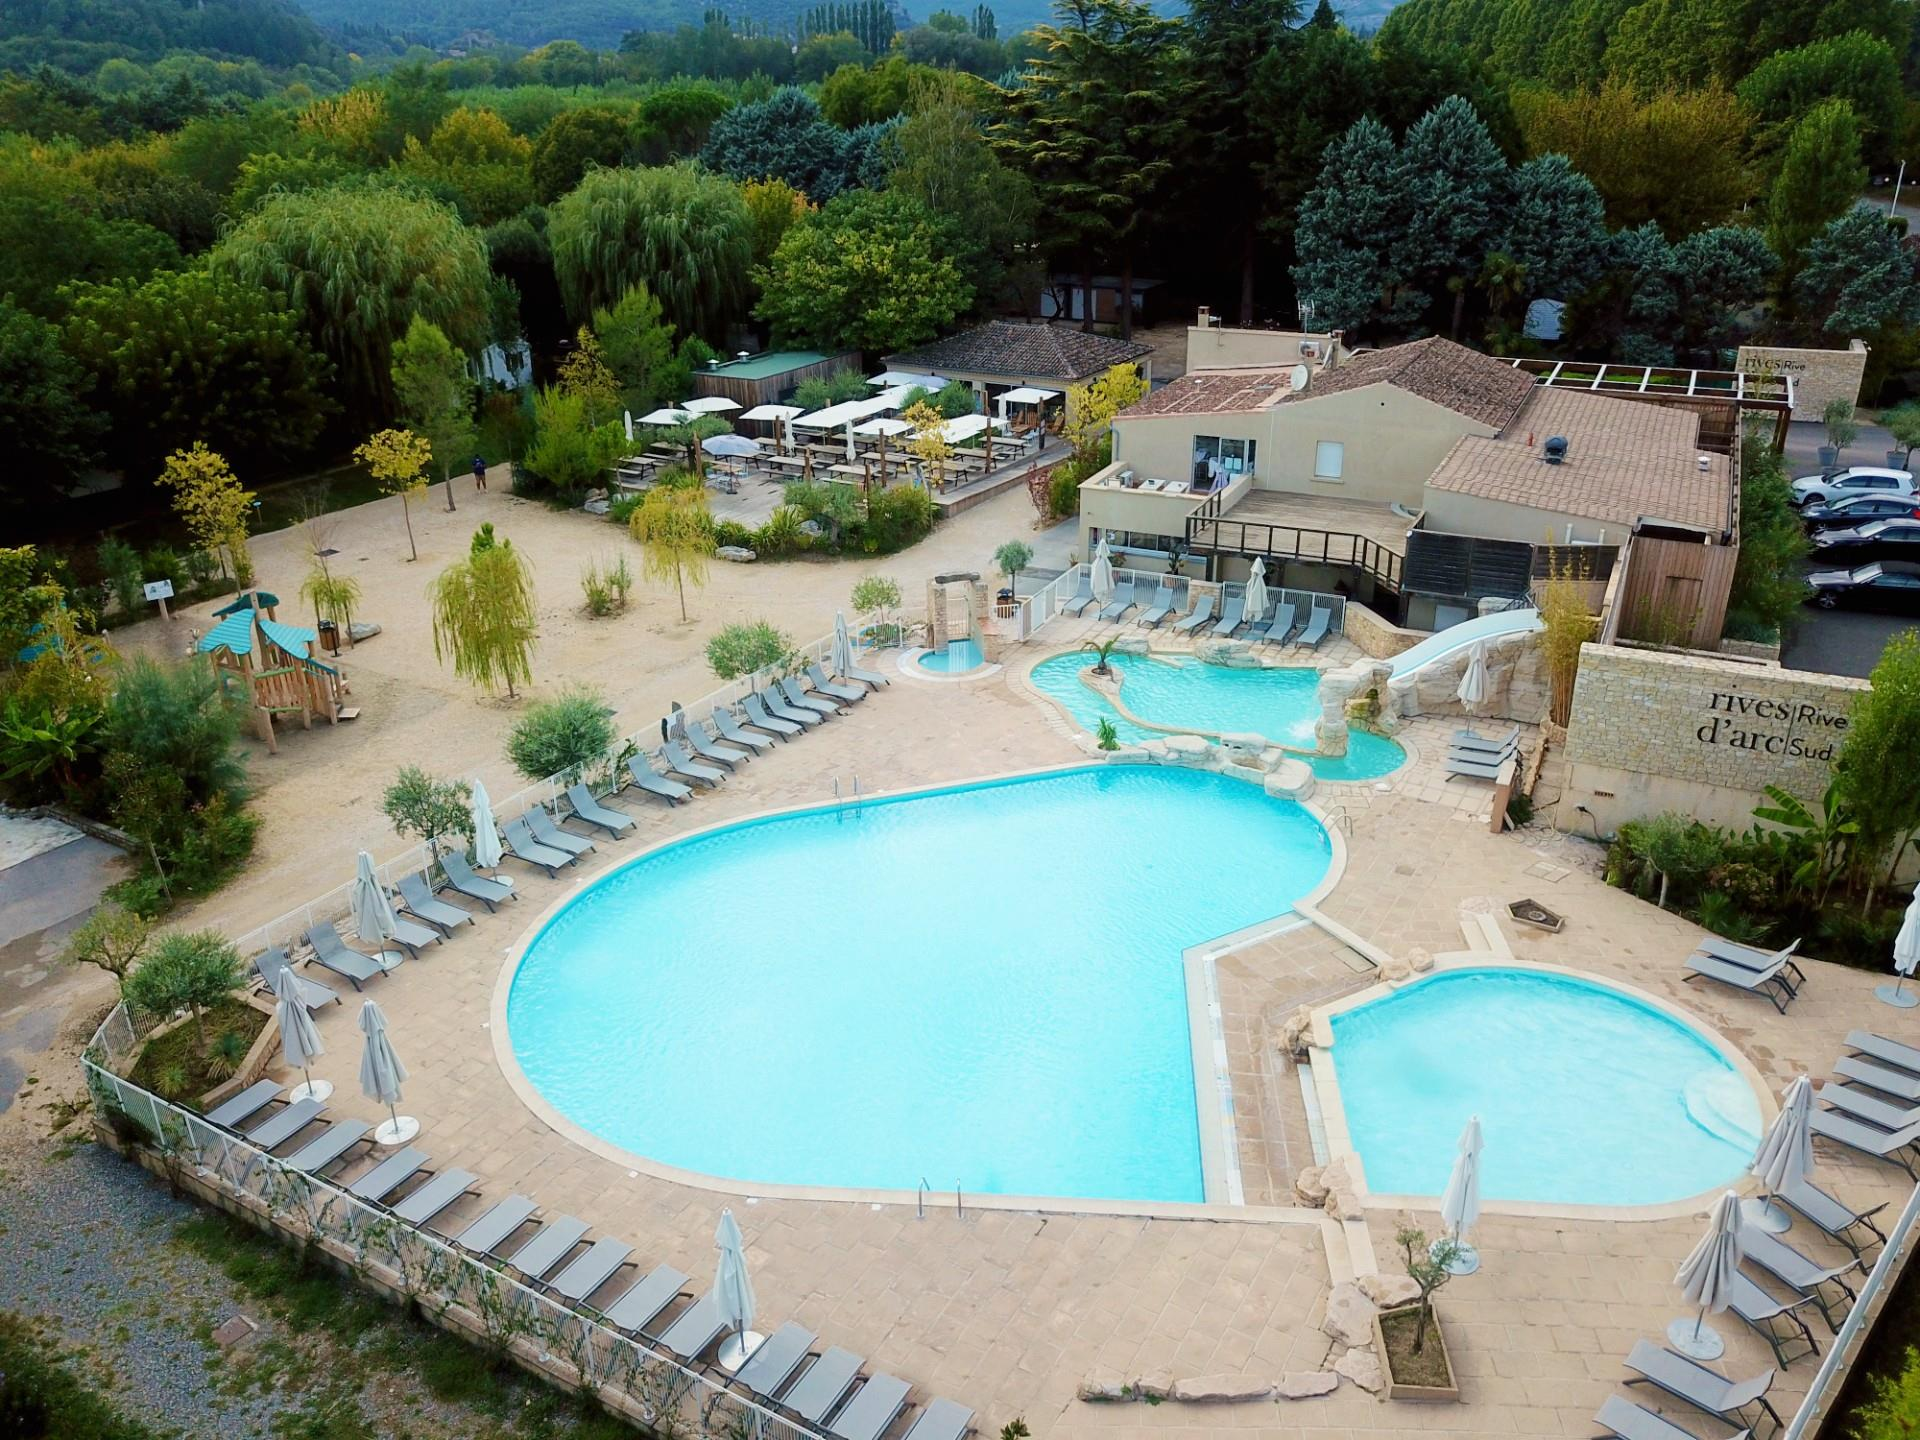 Zwemplezier Camping Rives D'arc - Vallon Pont D'arc